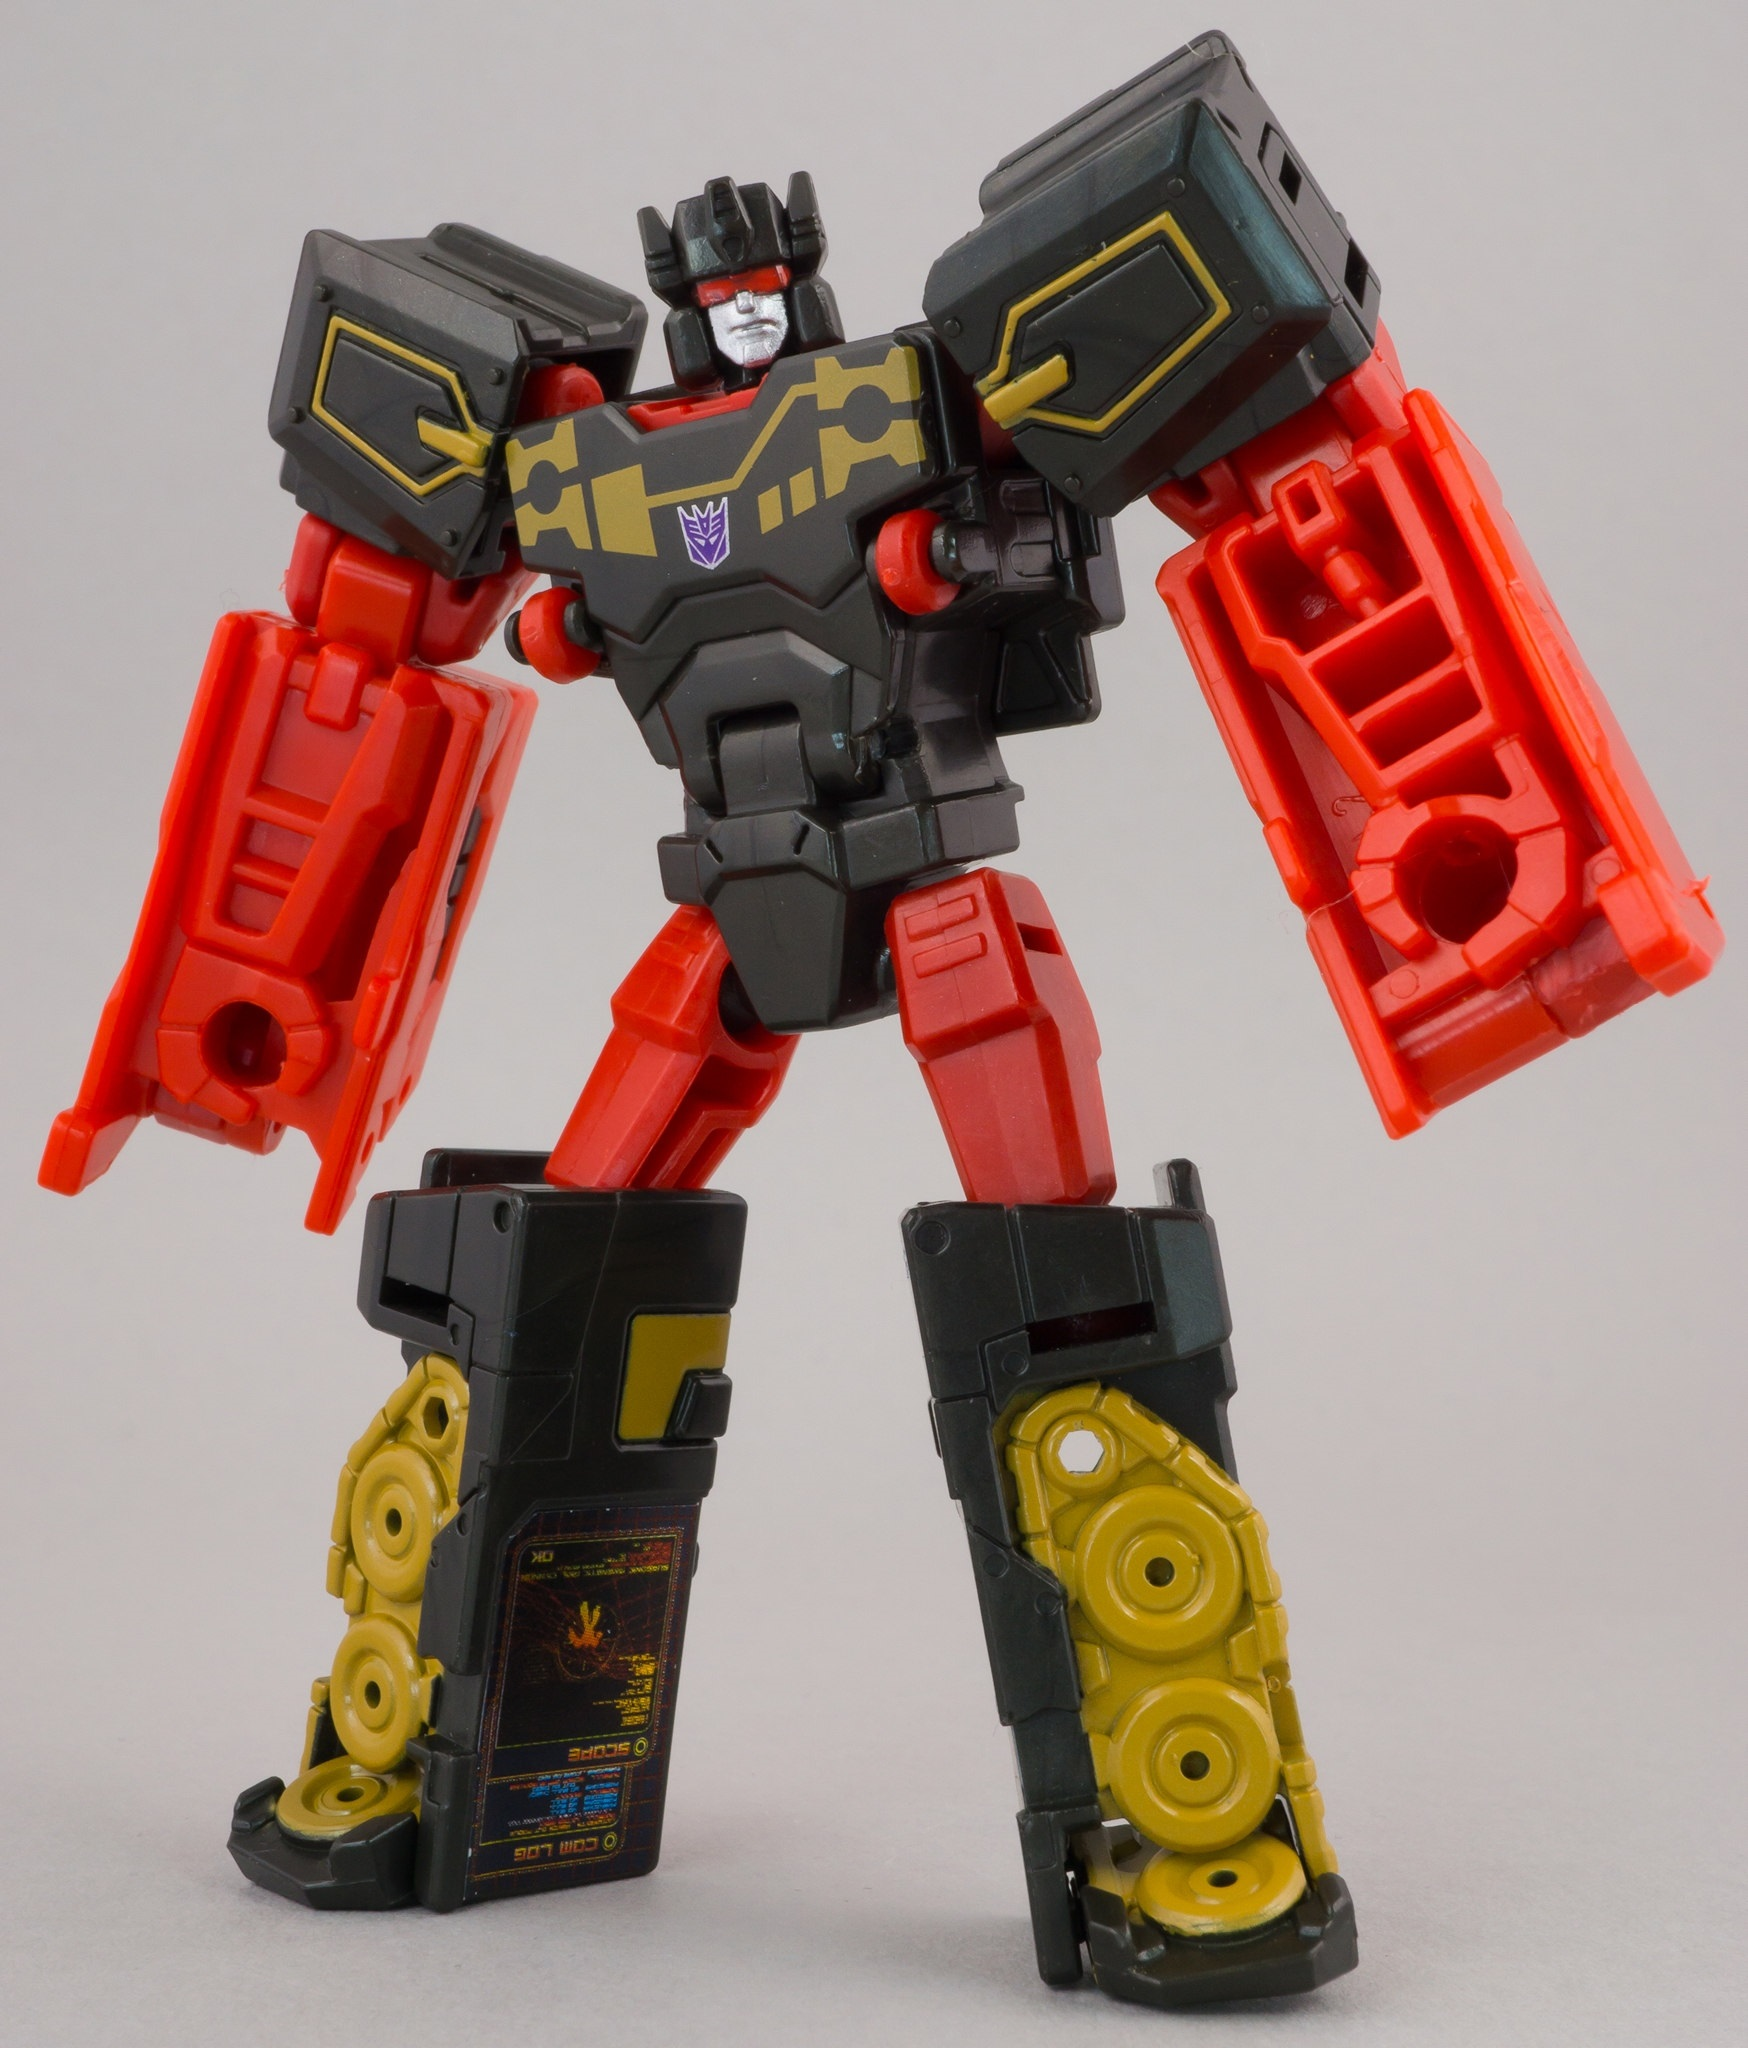 titans return rumble photoshoot transformers news tfw2005